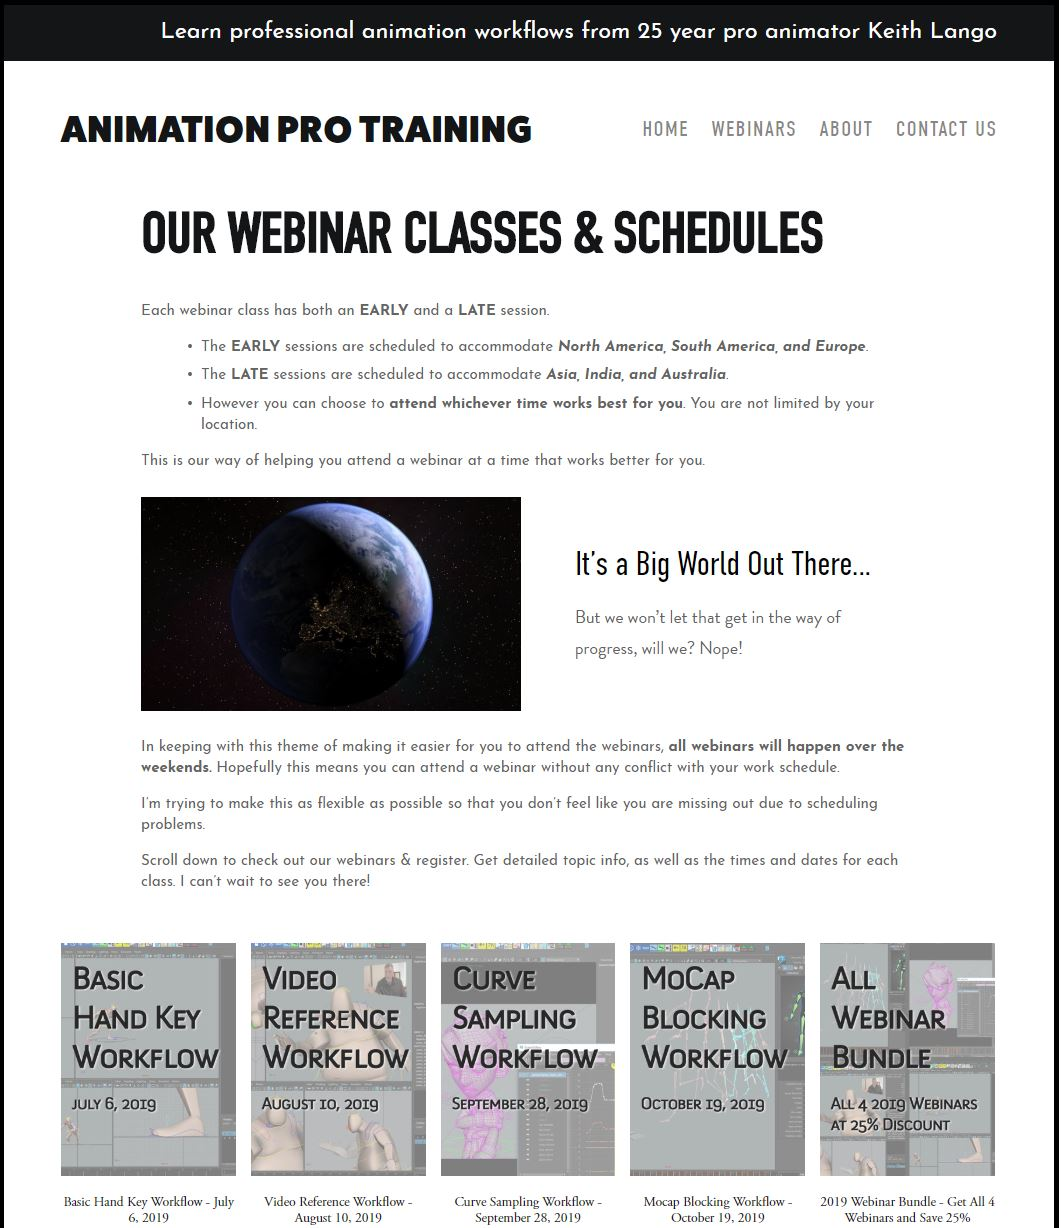 We have a new website, too! - Go check out the webinars now